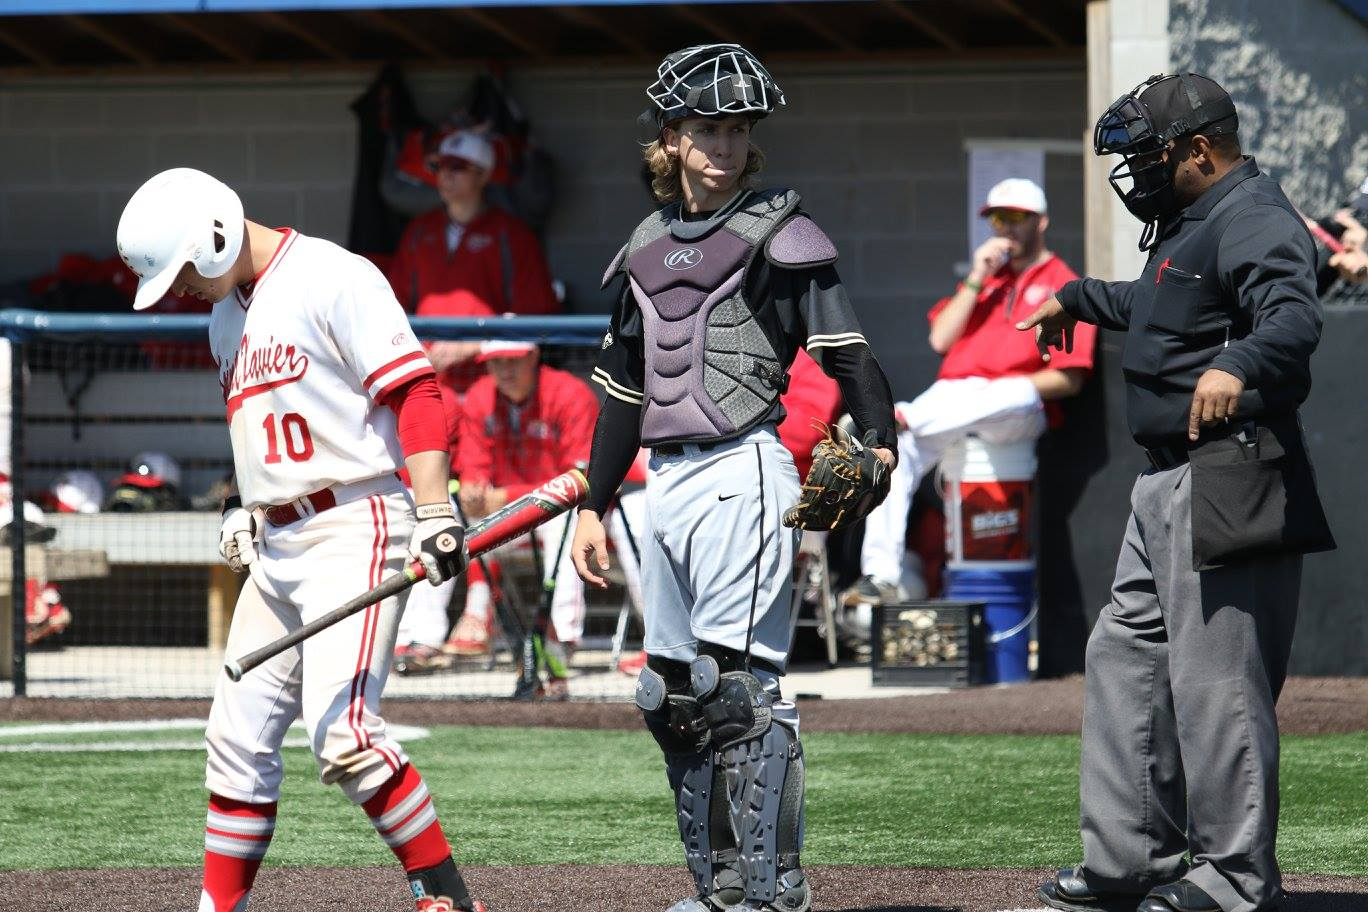 Hunter Thorn (center), catcher, will begin his second season on the PNW baseball team in March.